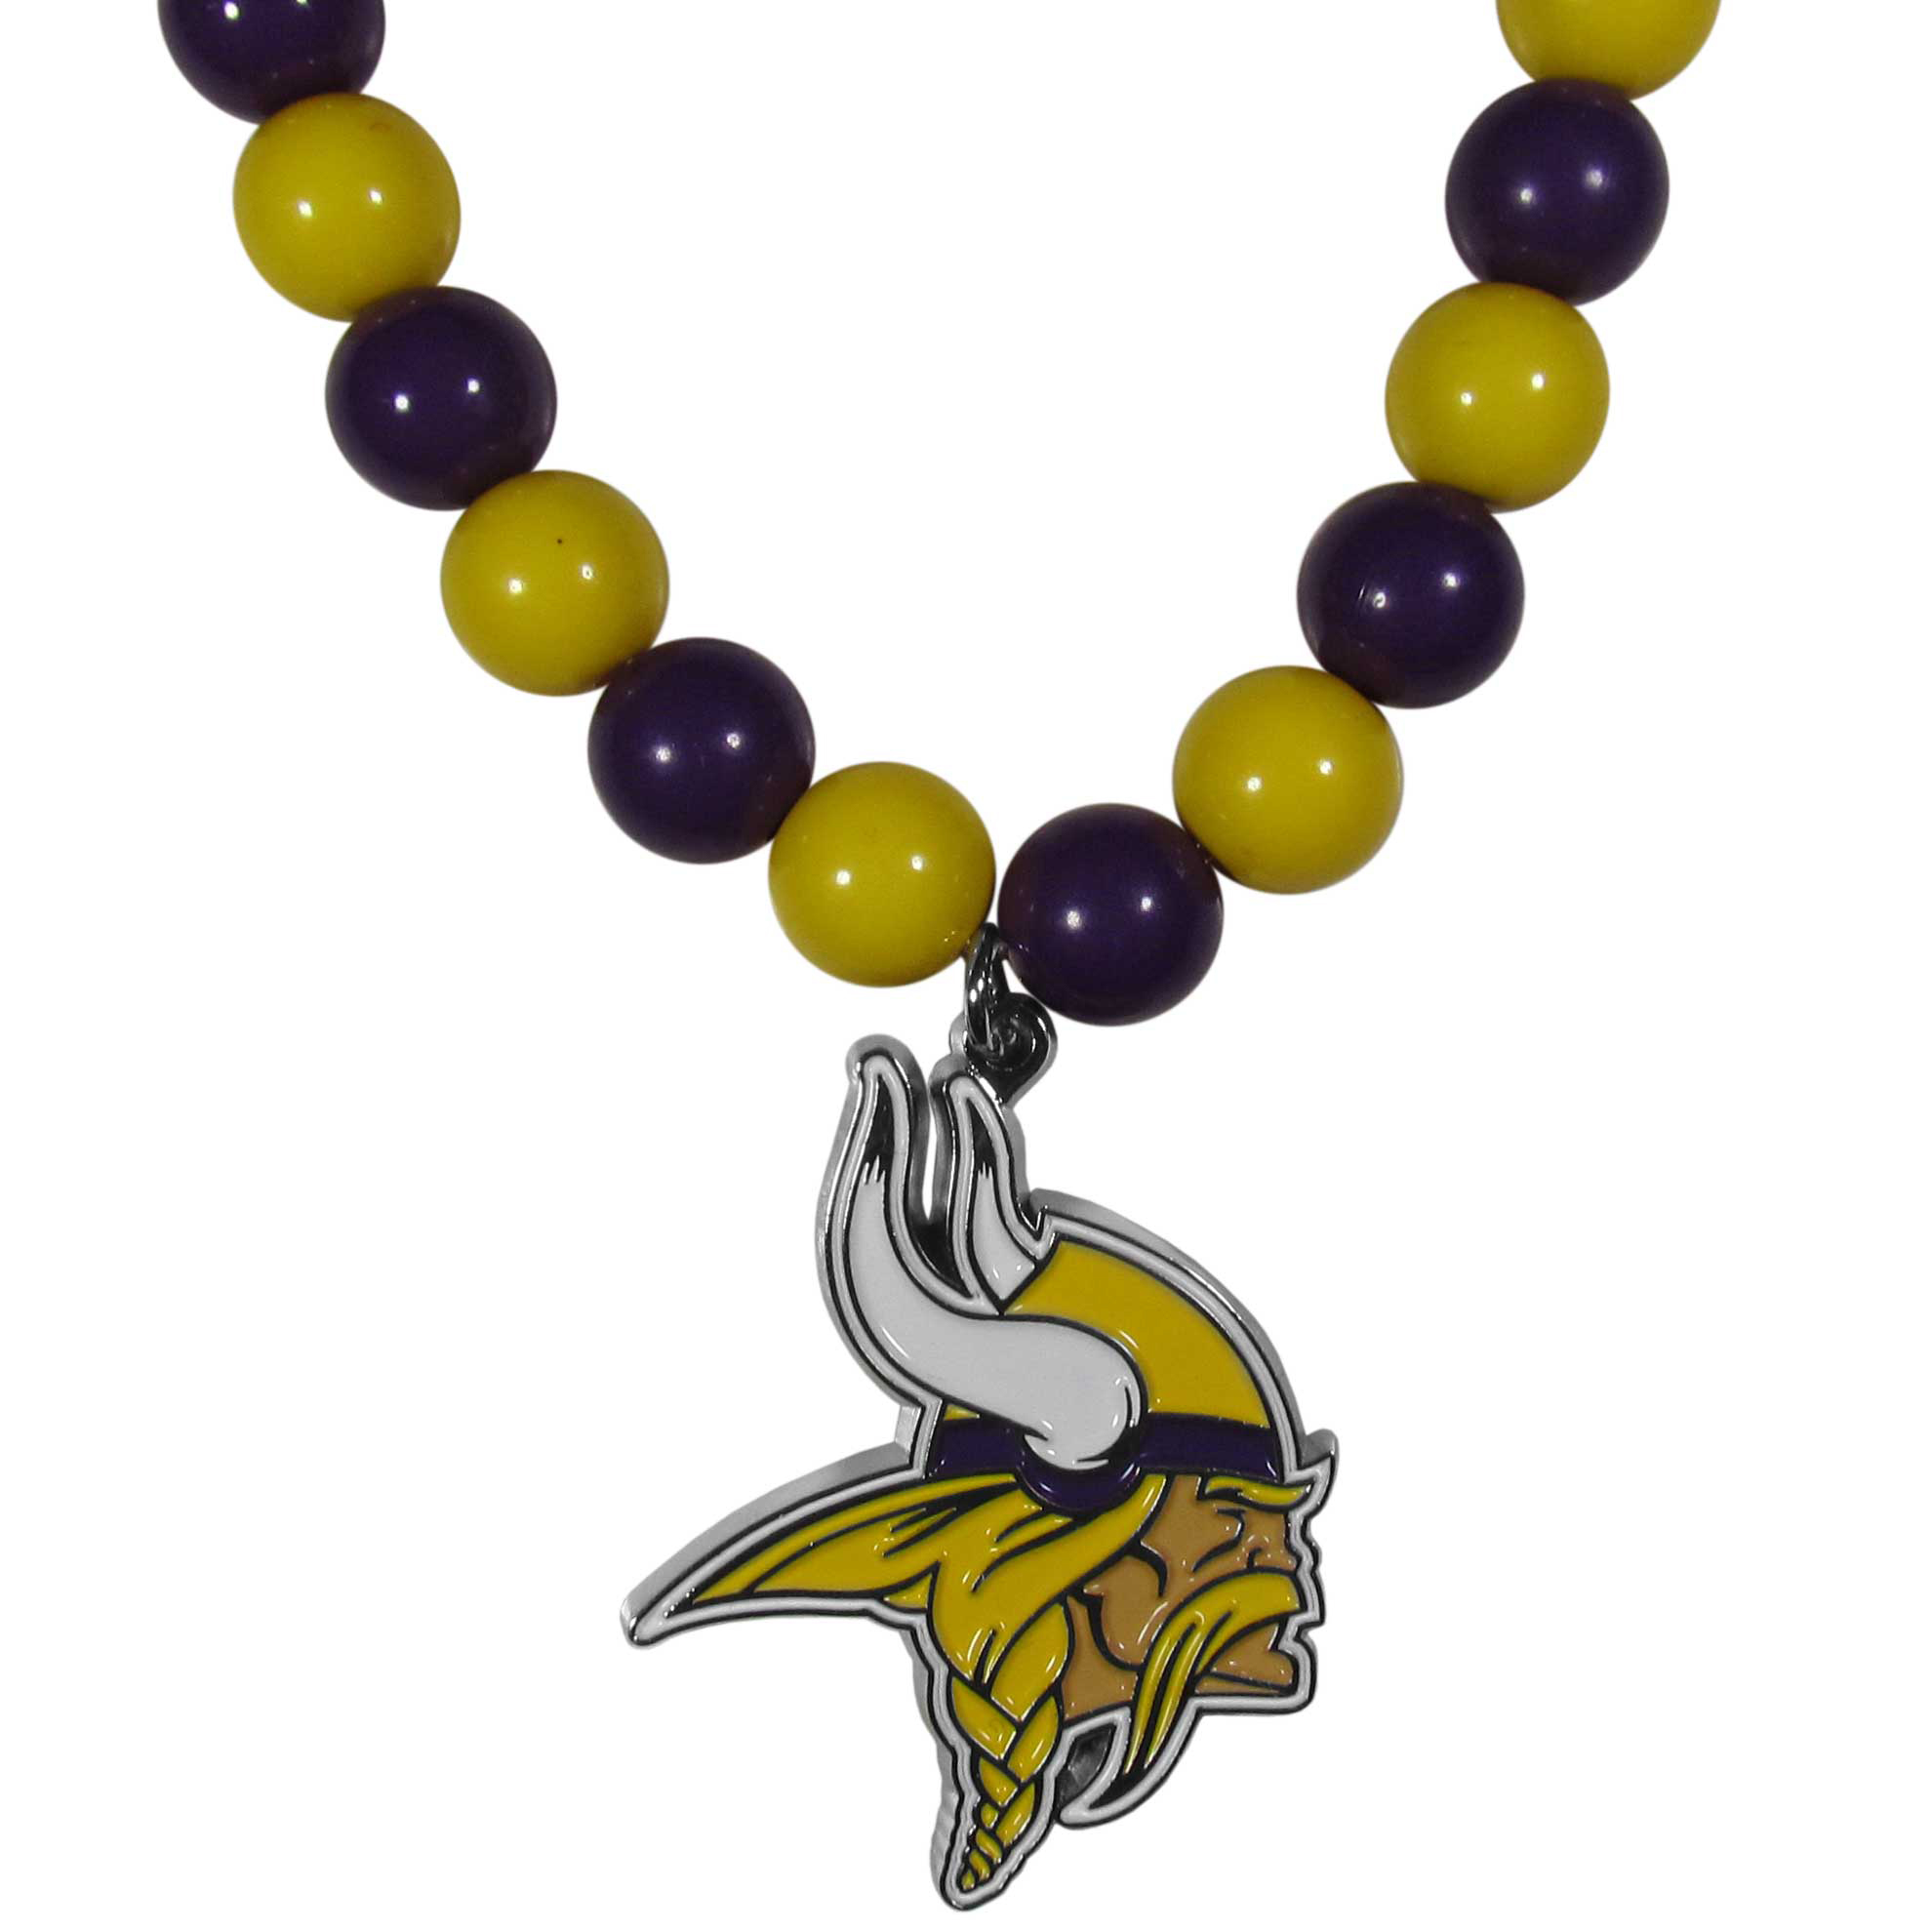 Minnesota Vikings Fan Bead Necklace - Make a big statement with our fan bead necklaces! These brightly colored necklace have a 24 inch string of alternating colored beads with an extra large, high-polish Minnesota Vikings pendant.